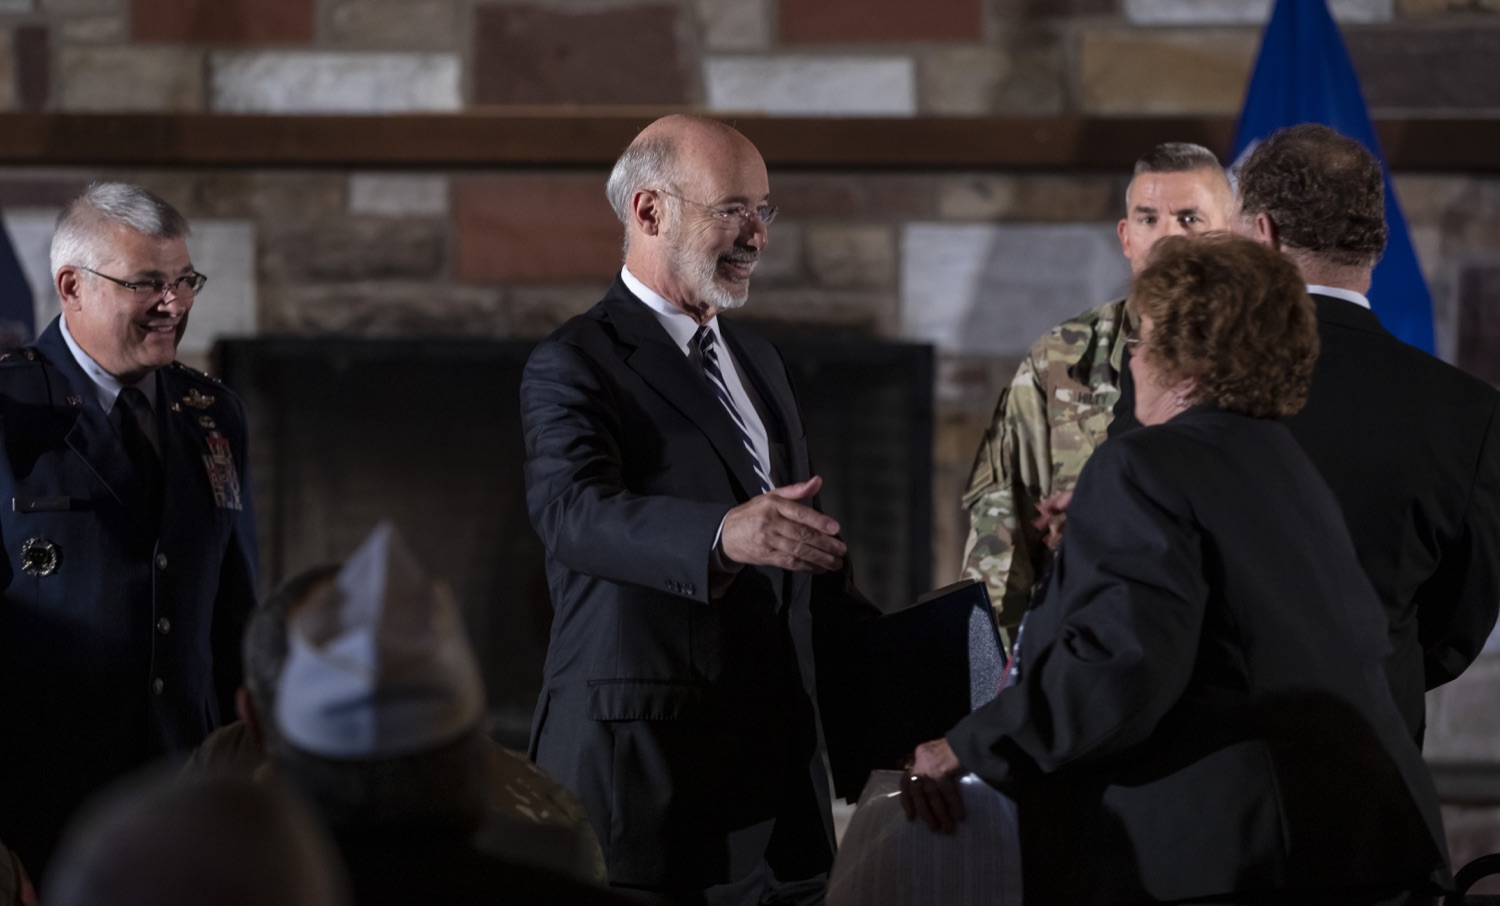 """<a href=""""https://filesource.wostreaming.net/commonwealthofpa/photo/17557_gov_dmva_rjw_002.jpg"""" target=""""_blank"""">⇣Download Photo<br></a>Governor Tom Wolf helped to honor two members inducted today into the Pennsylvania Department of Military and Veterans Affairs prestigious Hall of Fame, recognizing their exceptional service to the department that supports Pennsylvanias nearly 800,000 veterans and 18,000 members of the National Guard.  Chief Warrant Officer 5 (ret.) John K. Schreier of Selinsgrove, Snyder County; and John A. Brenner (posthumously) of Mt. Wolf, York County, are the 2019 inductees."""